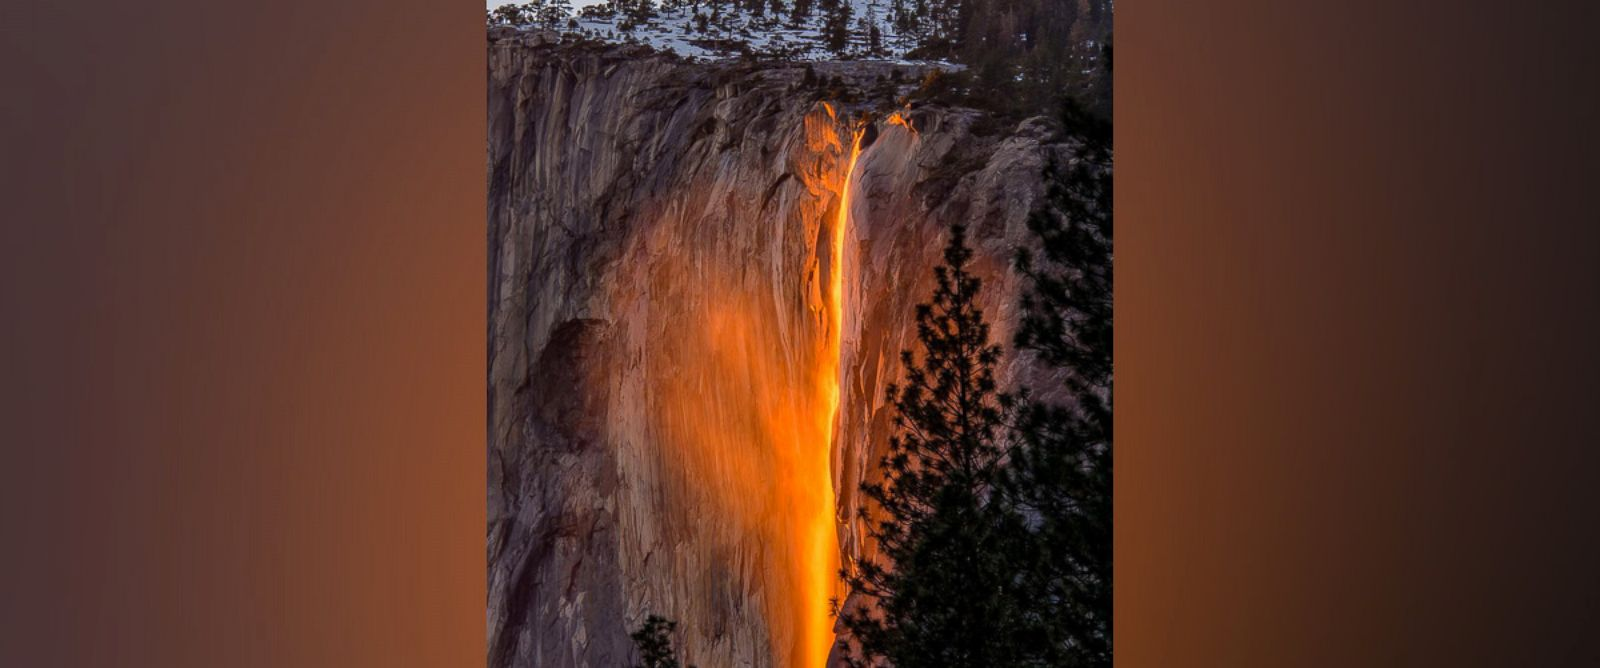 PHOTO: Striking images of Horsetail Fall waterfall in Yosemite park. Every year for about two weeks in February the sun sets in such a way that it looks as though the waterfall is on fire.